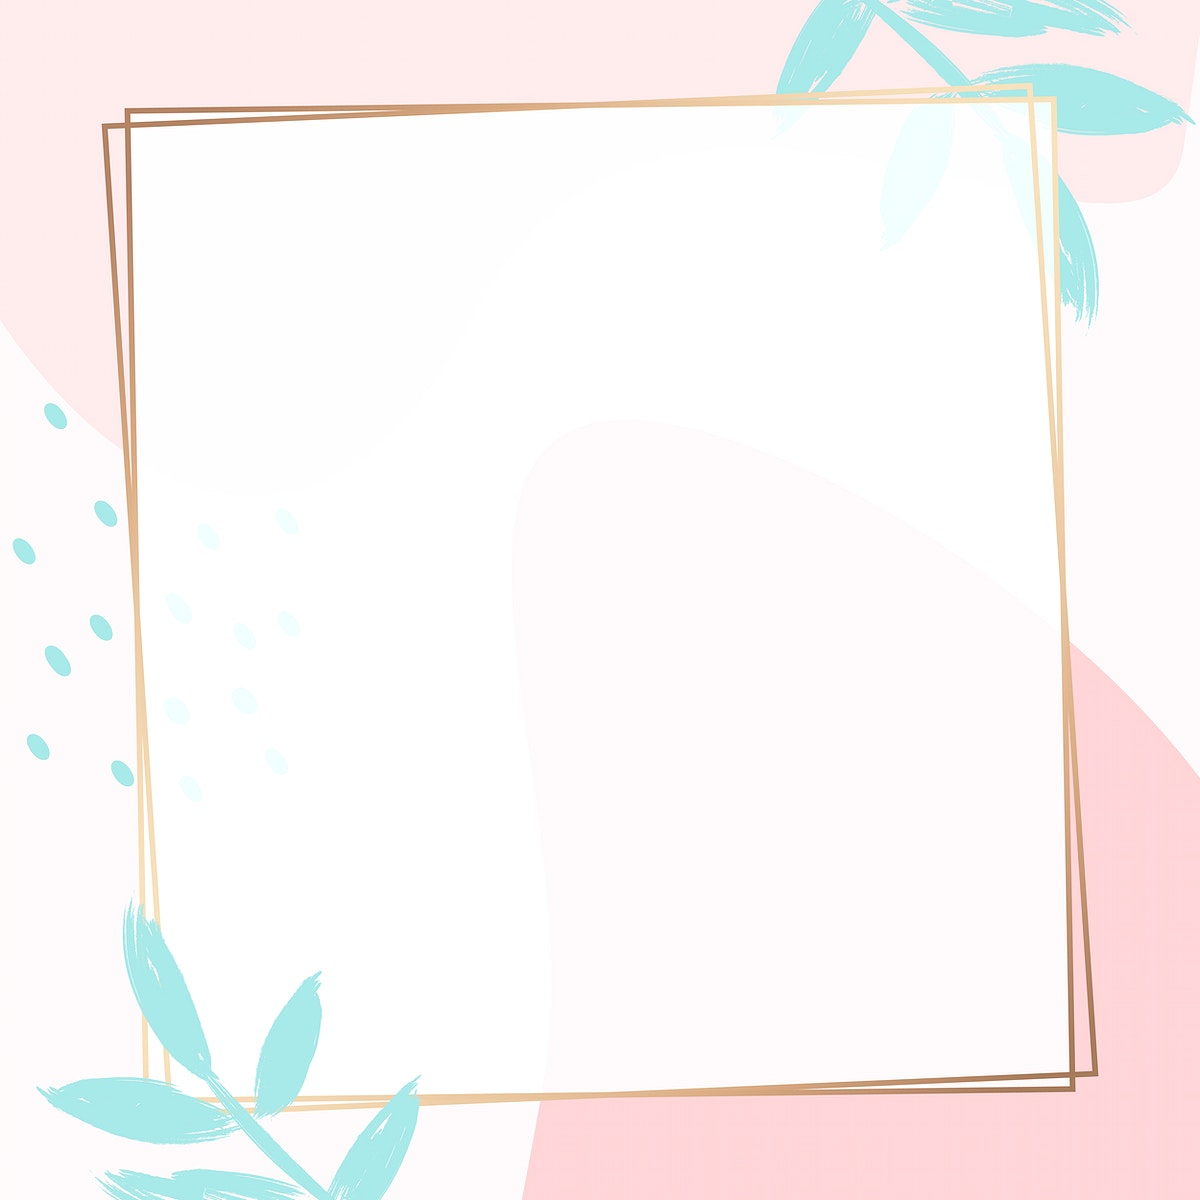 Square golden frame on a colorful Memphis pattern background vector